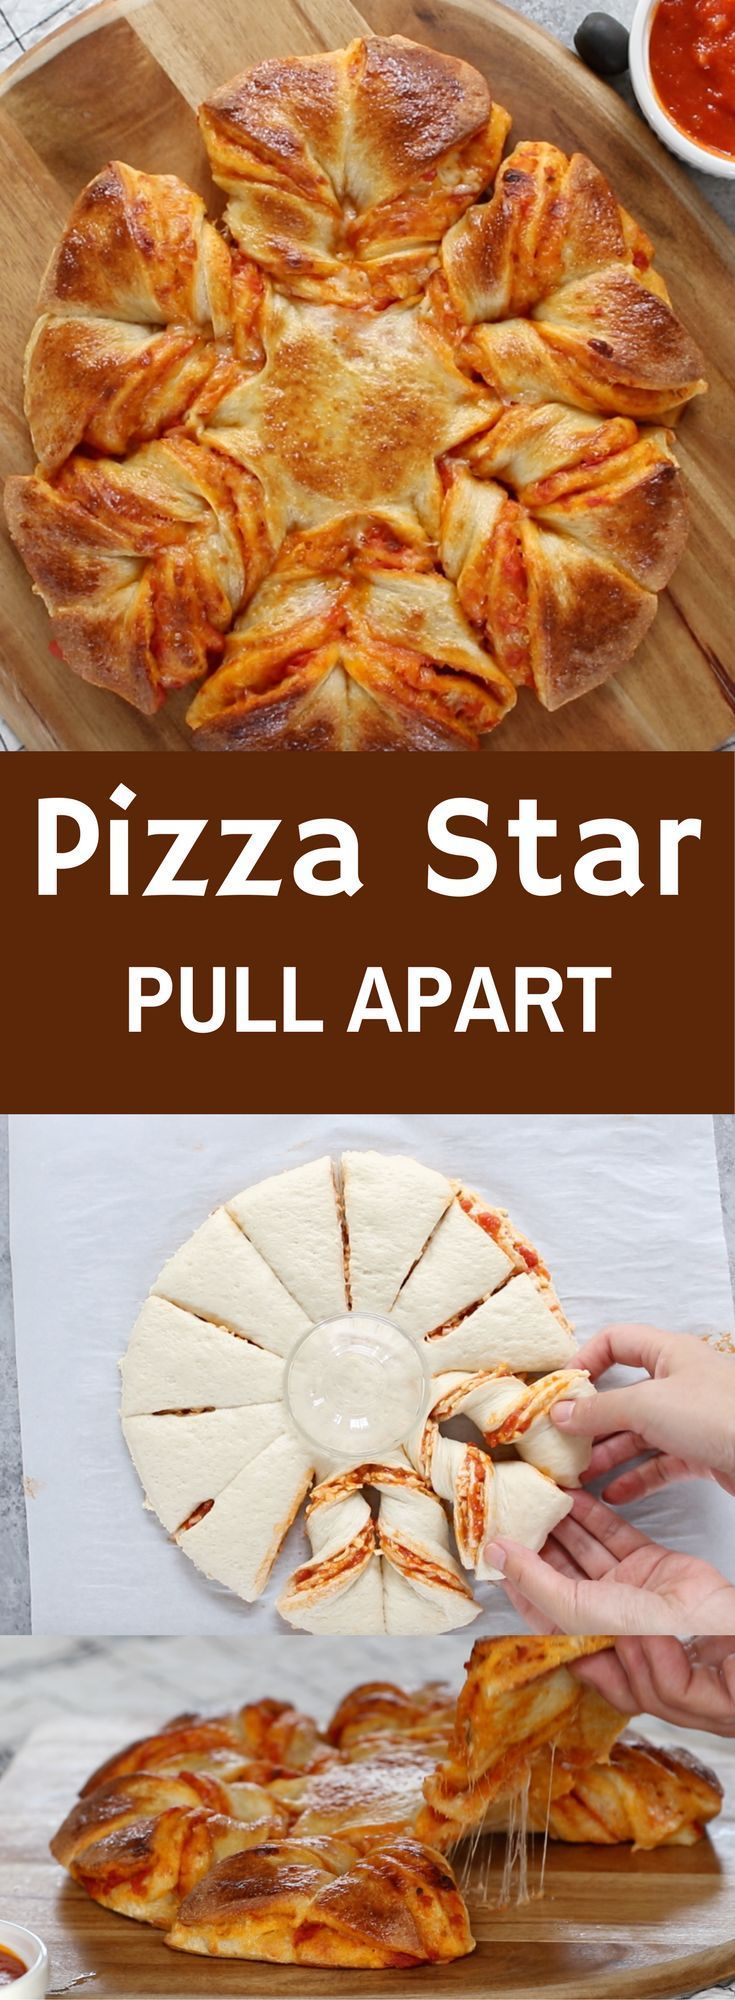 This incredible Pizza Start Pull Apart recipe takes about 5 minutes to prepare, with just 5 ingredients! Leave it in the oven for 20 minutes, and a beautiful mea is ready! And you won't need a knife for serving since it pulls apart…